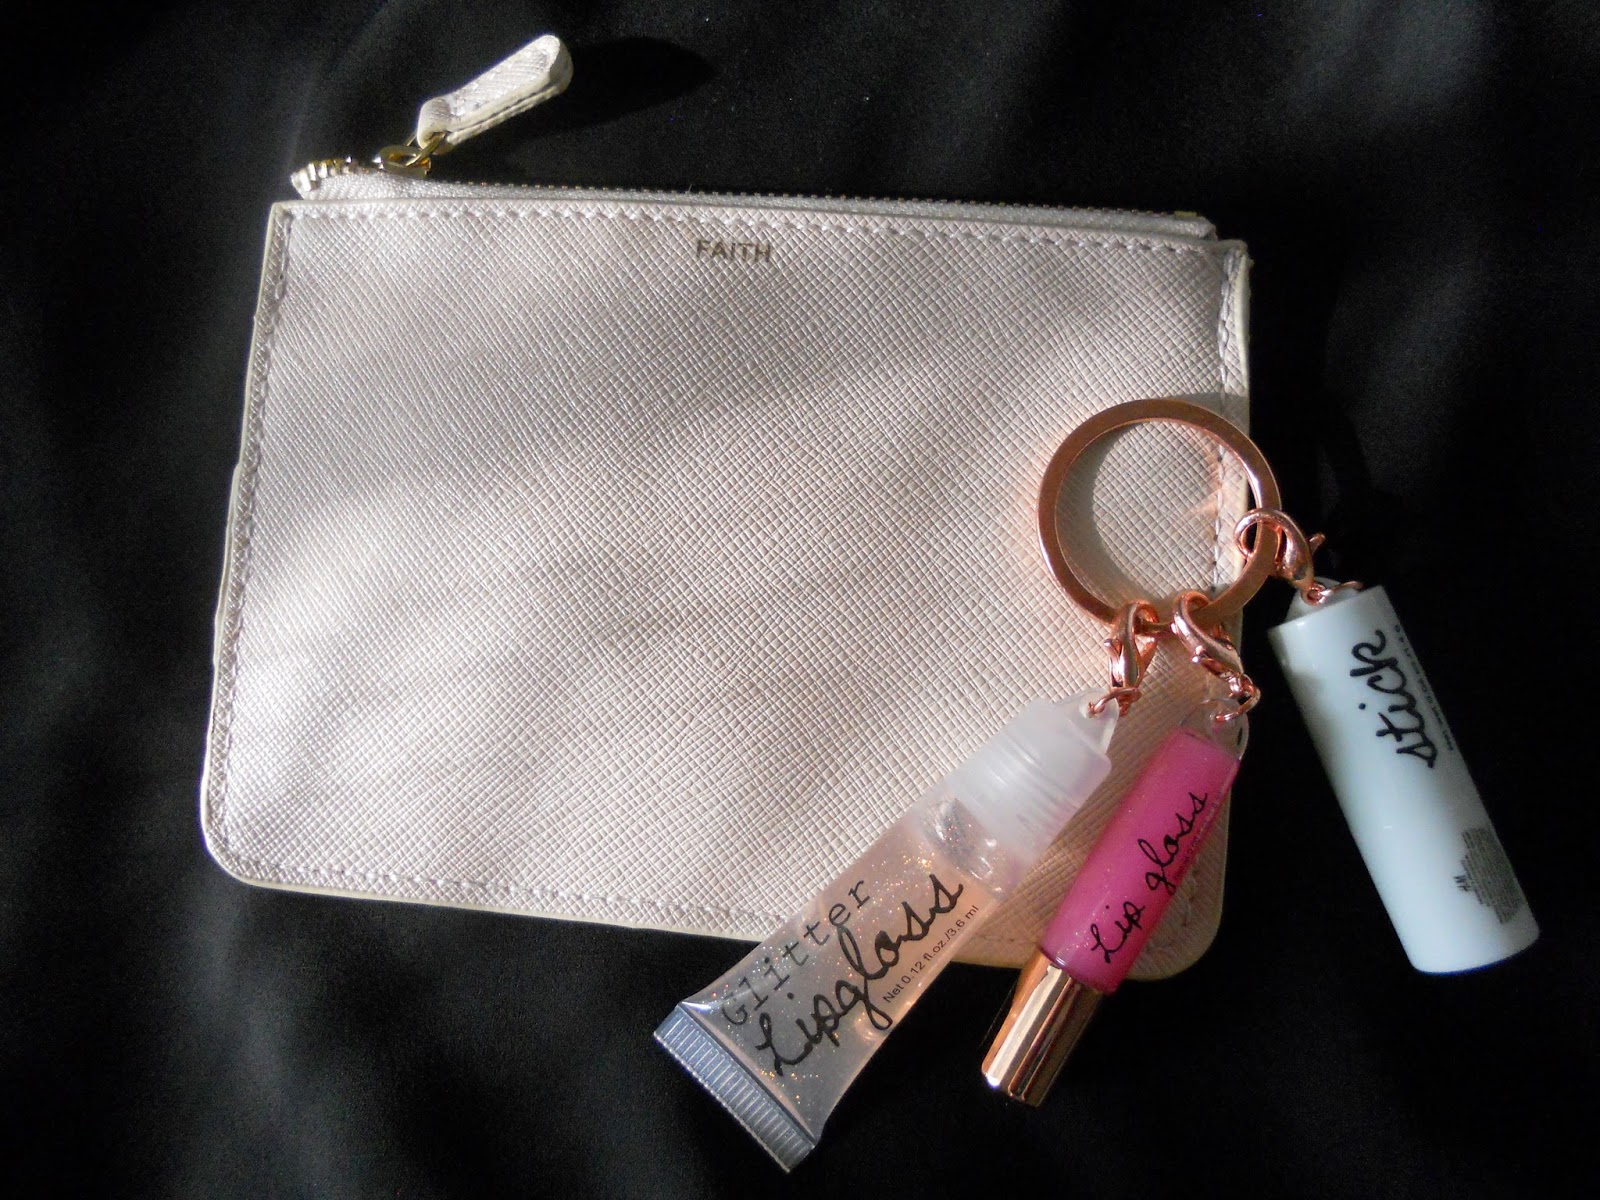 cheap, celine look a like, lookalike, faux leather at a good price, faith bag, simple, lip gloss keychain, hm lipgloss